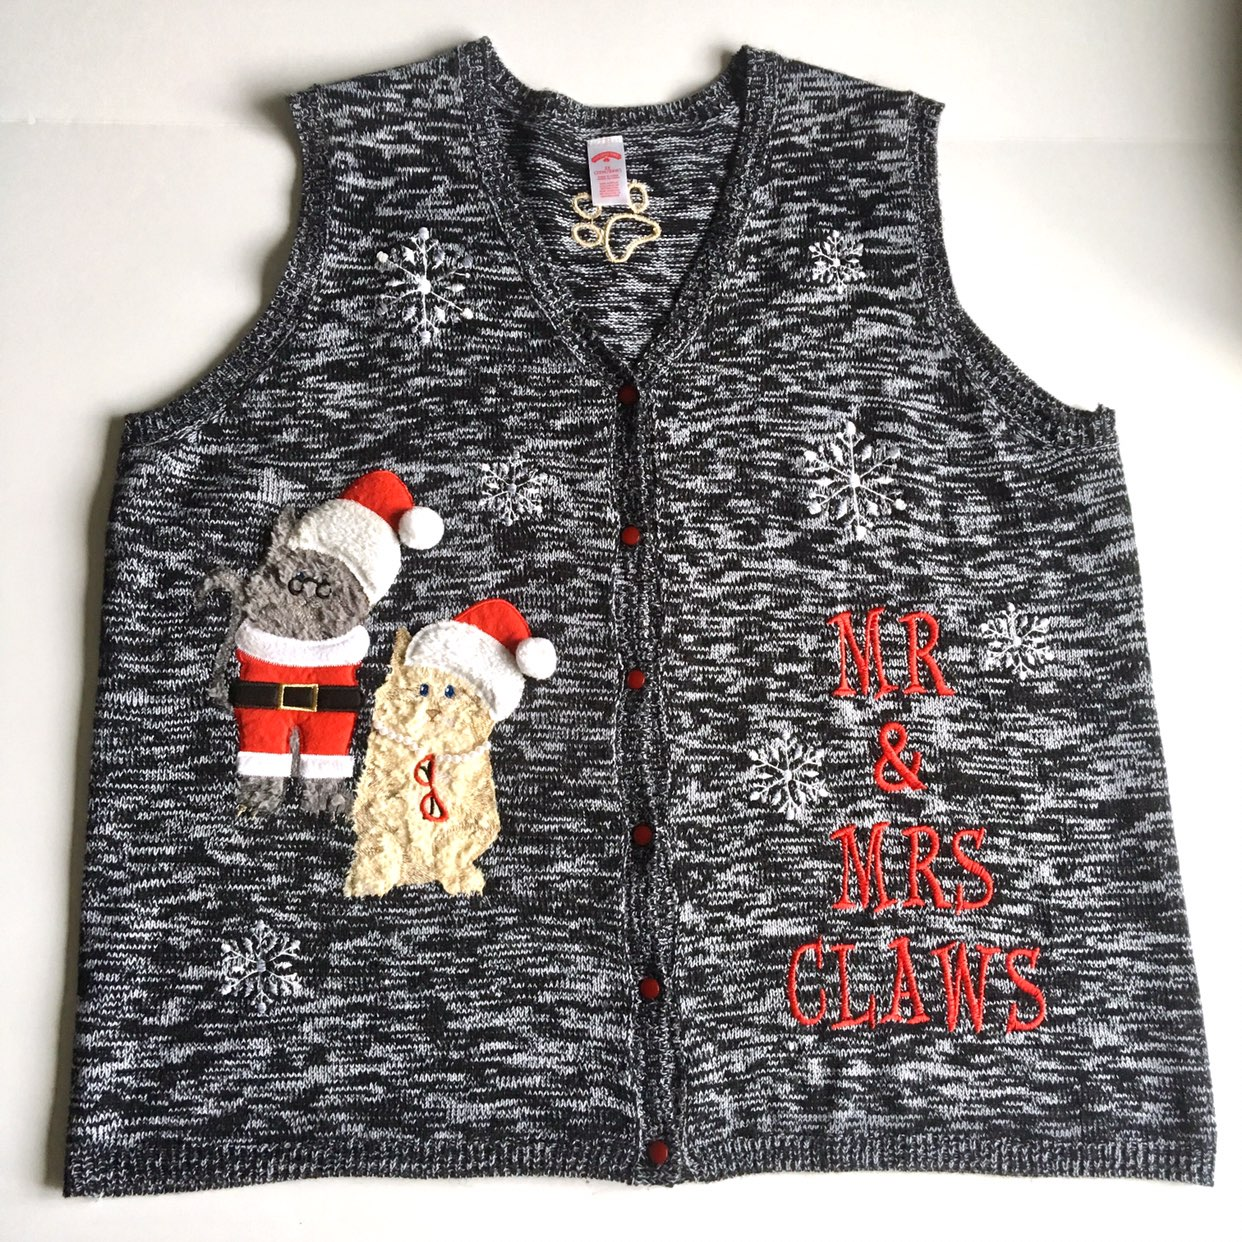 3X Plus Size Cat Christmas Sweater Vest - Mercari: BUY & SELL ...